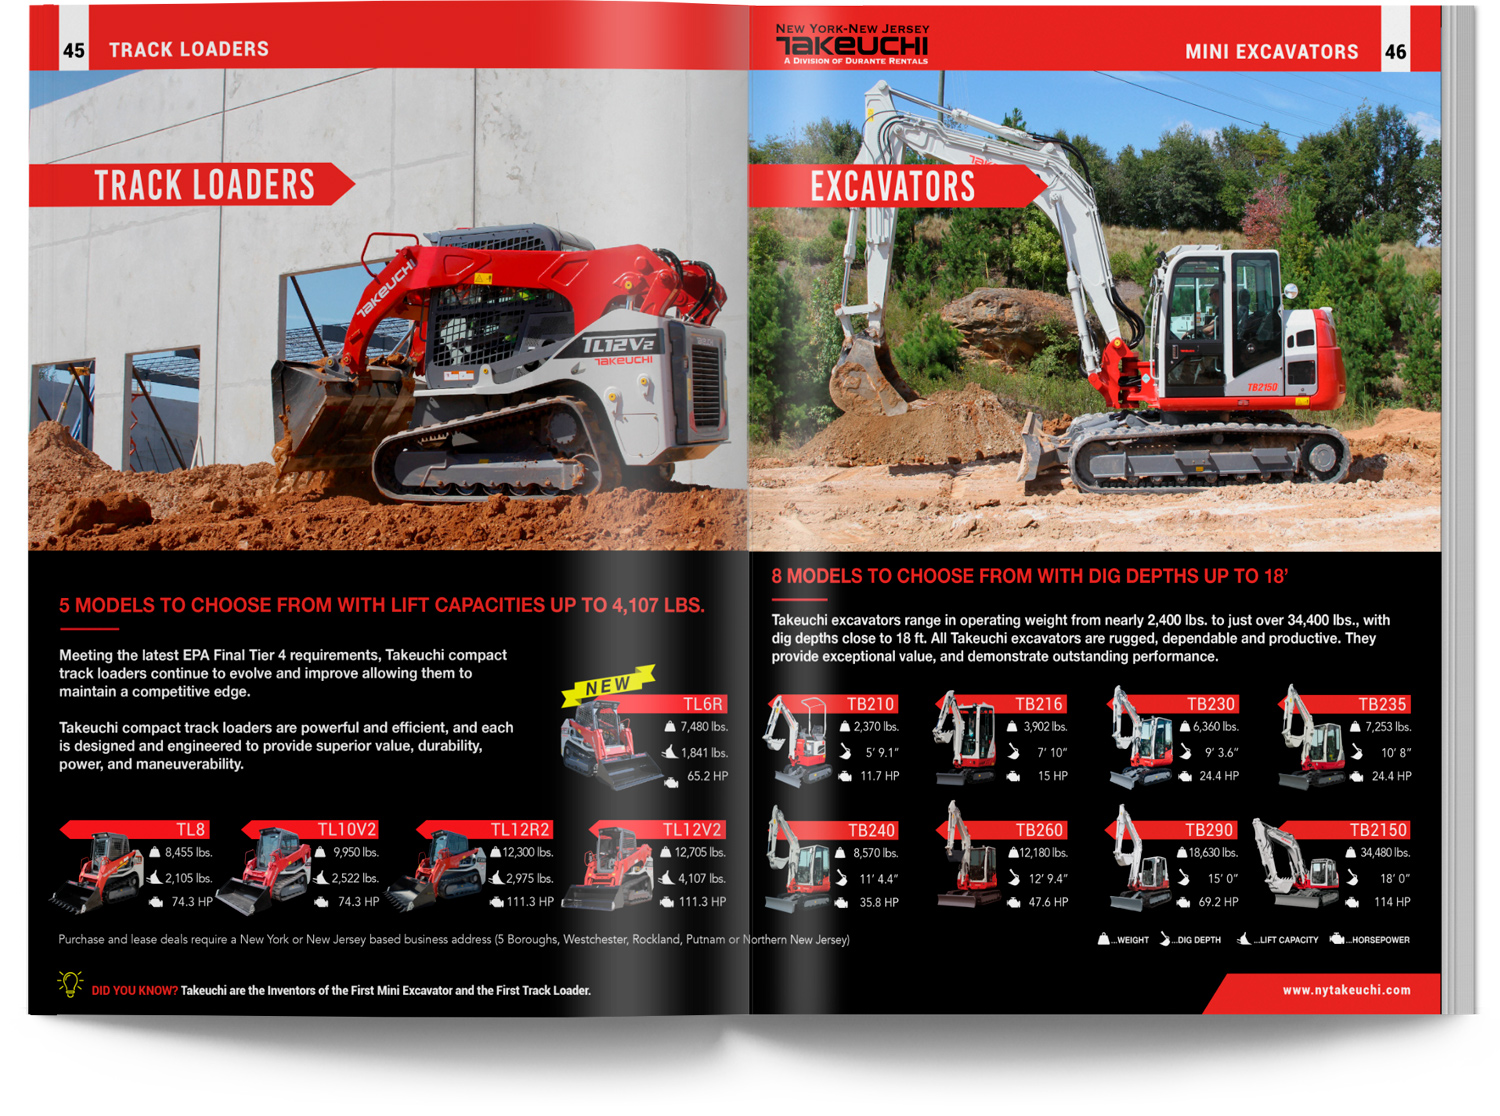 Takeuchi Track Loaders and Excavators Catalog Construction Equipment